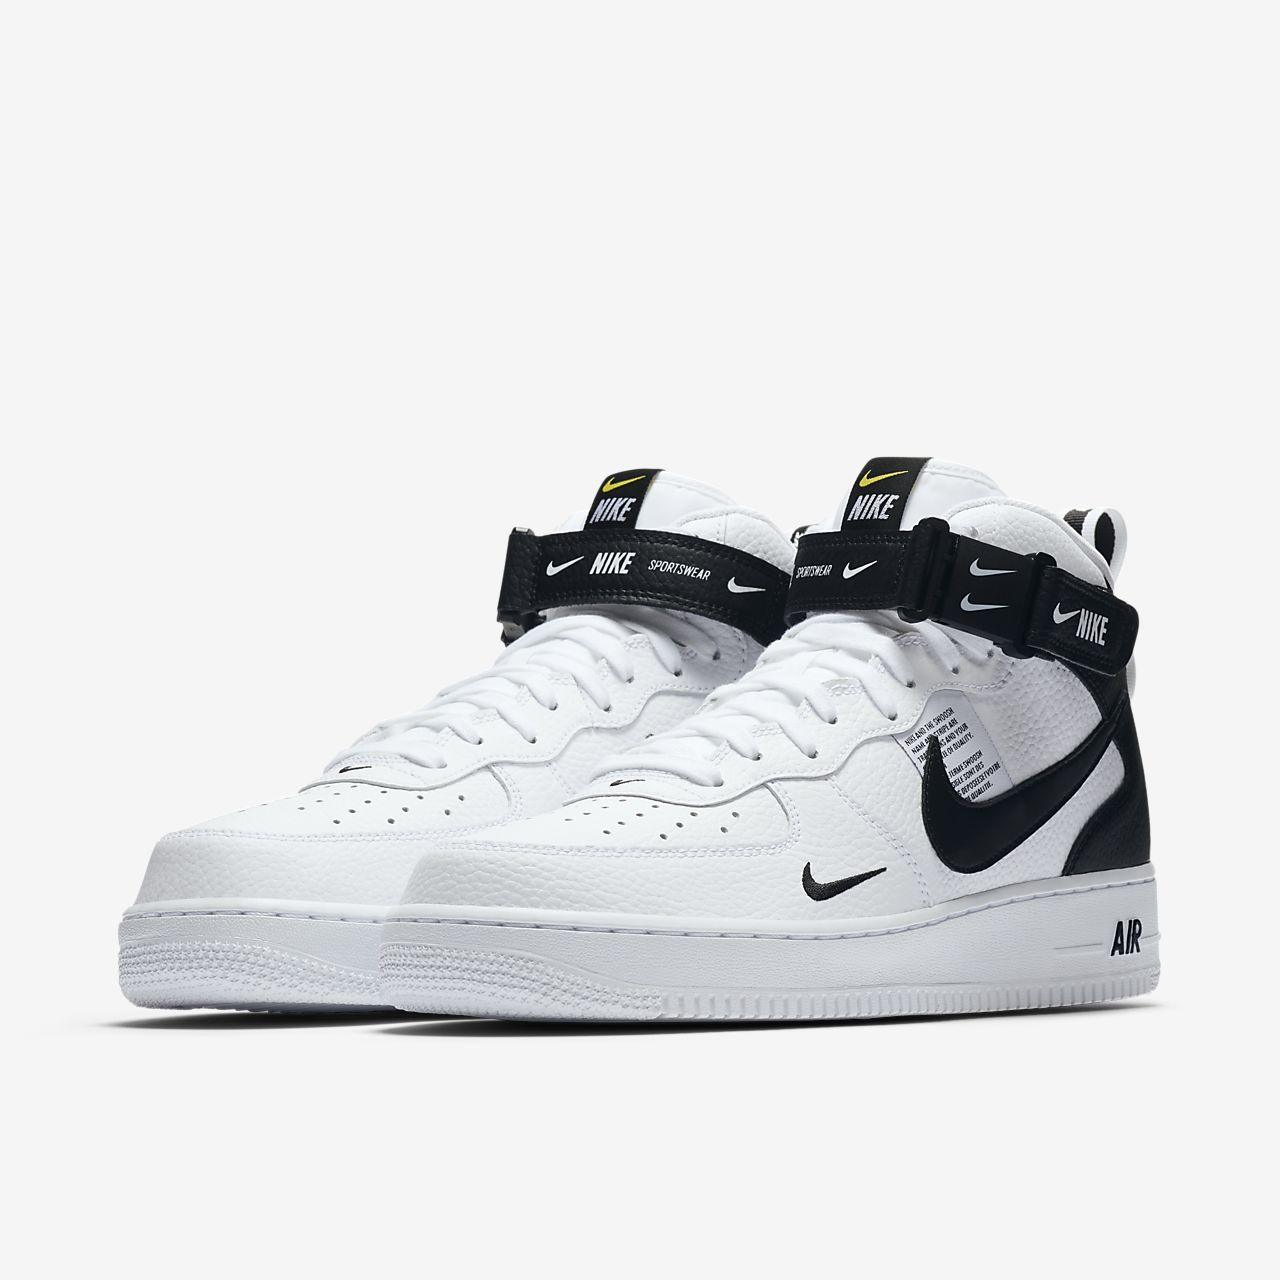 Chaussure Nike Air Force 1 07 Mid LV8 pour Homme